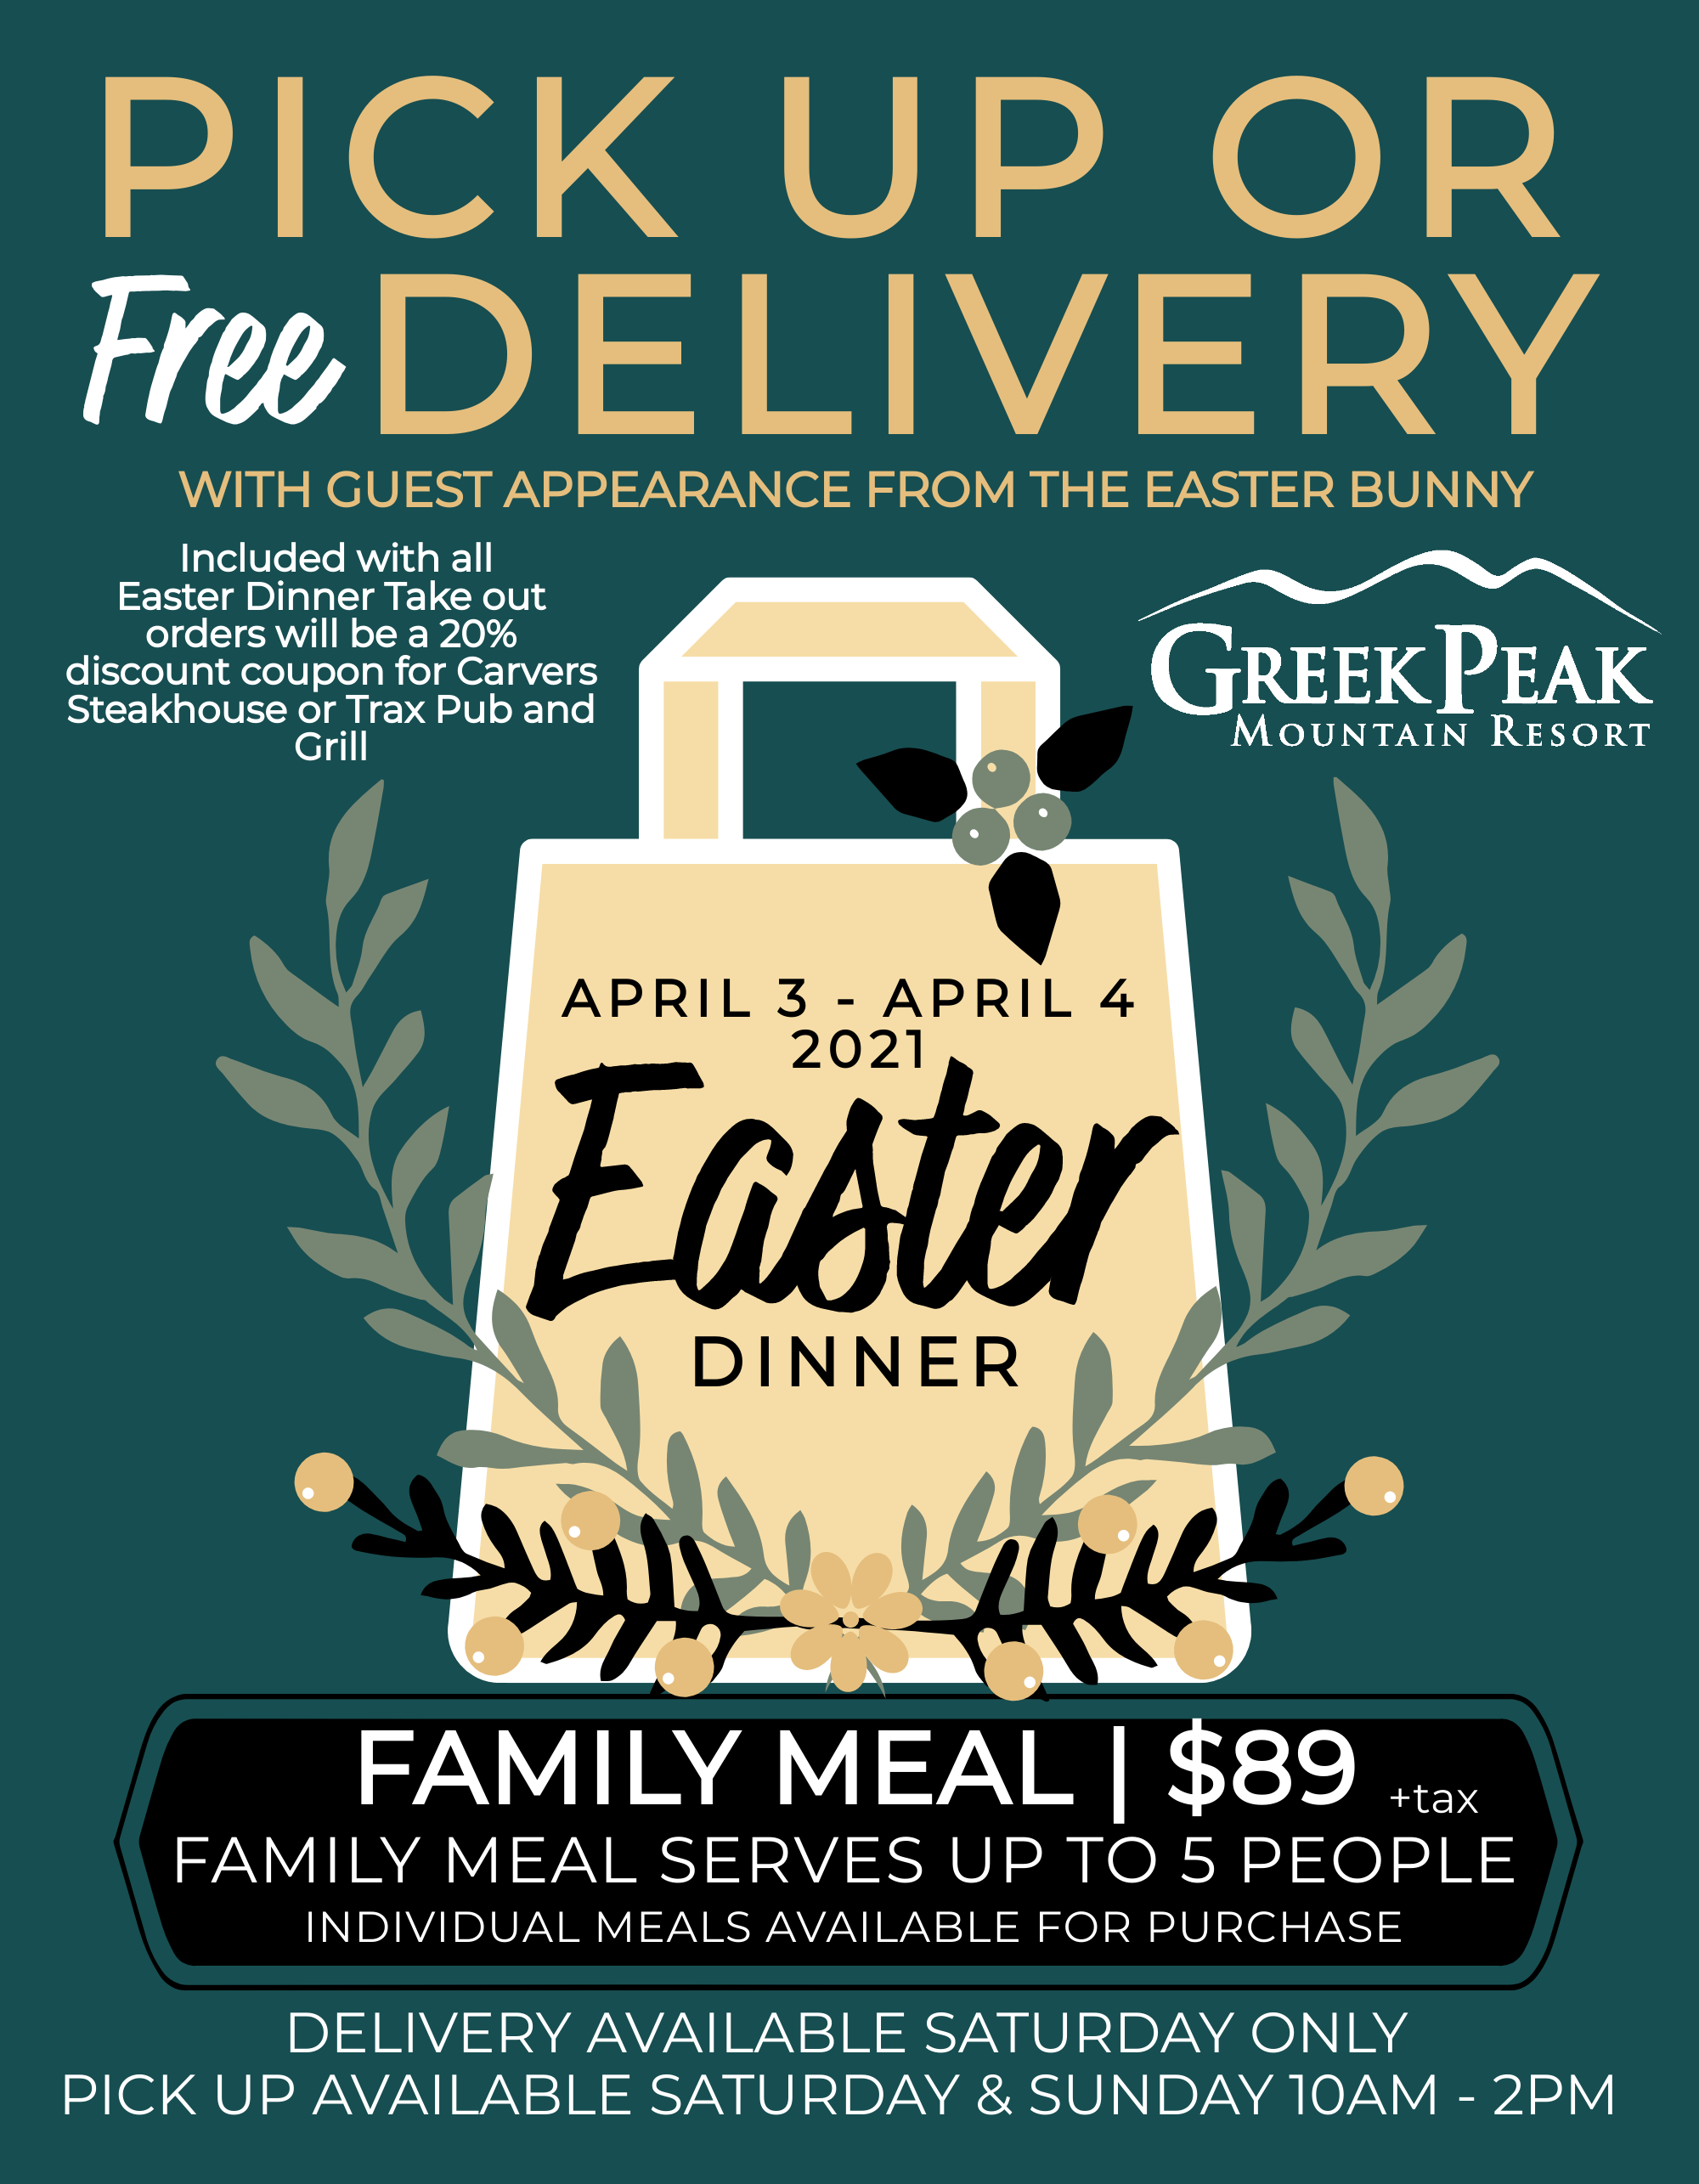 Easter dinner pick up for free delivery. Guest appearance from the Easter bunny. Included with all Easter dinner take outs will be a 20% off coupon to Carvers Steakhouse or Trax Pub & Grill. April 3-4th 2021. Family meal, $89 plus tax. Family meal serves 5 people, individual meals available for purchase. Delivery available Saturday the 3rd only. Pick up available Saturday and Sunday from 10am-12pm. Picture of a bag with flowers around it.